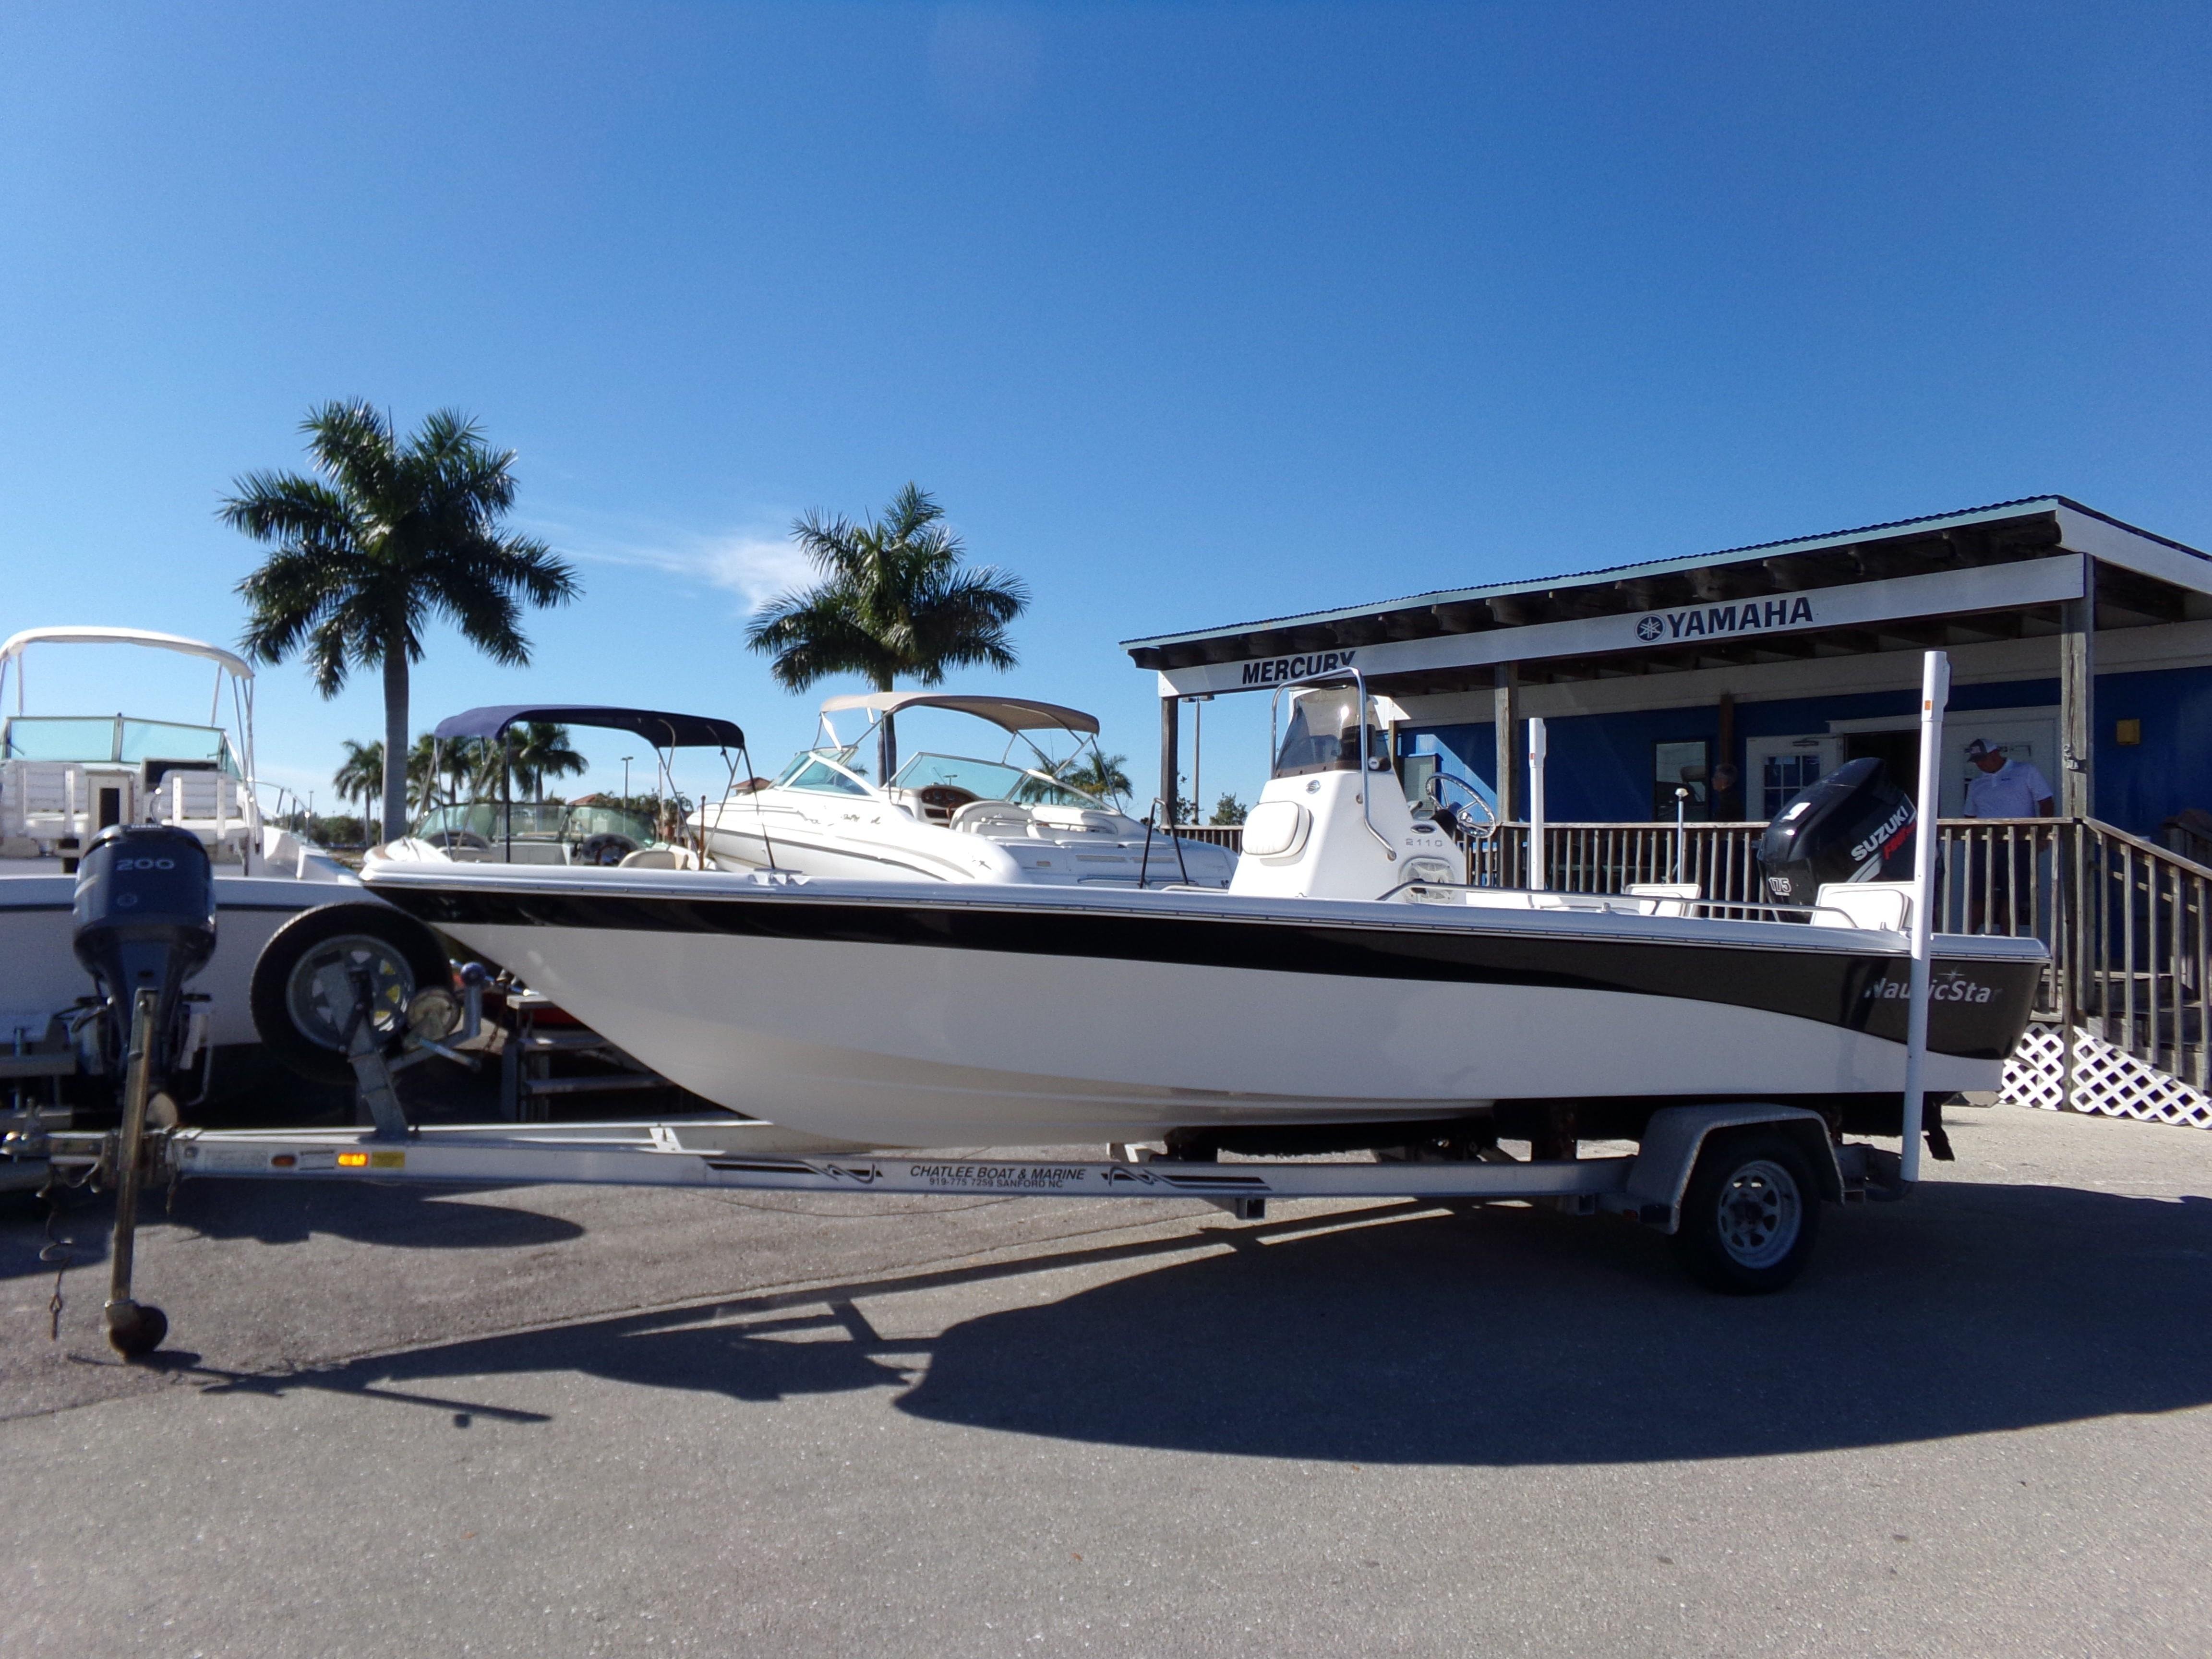 Used NauticStar Boats For Sale - Boaters Paradise in United States